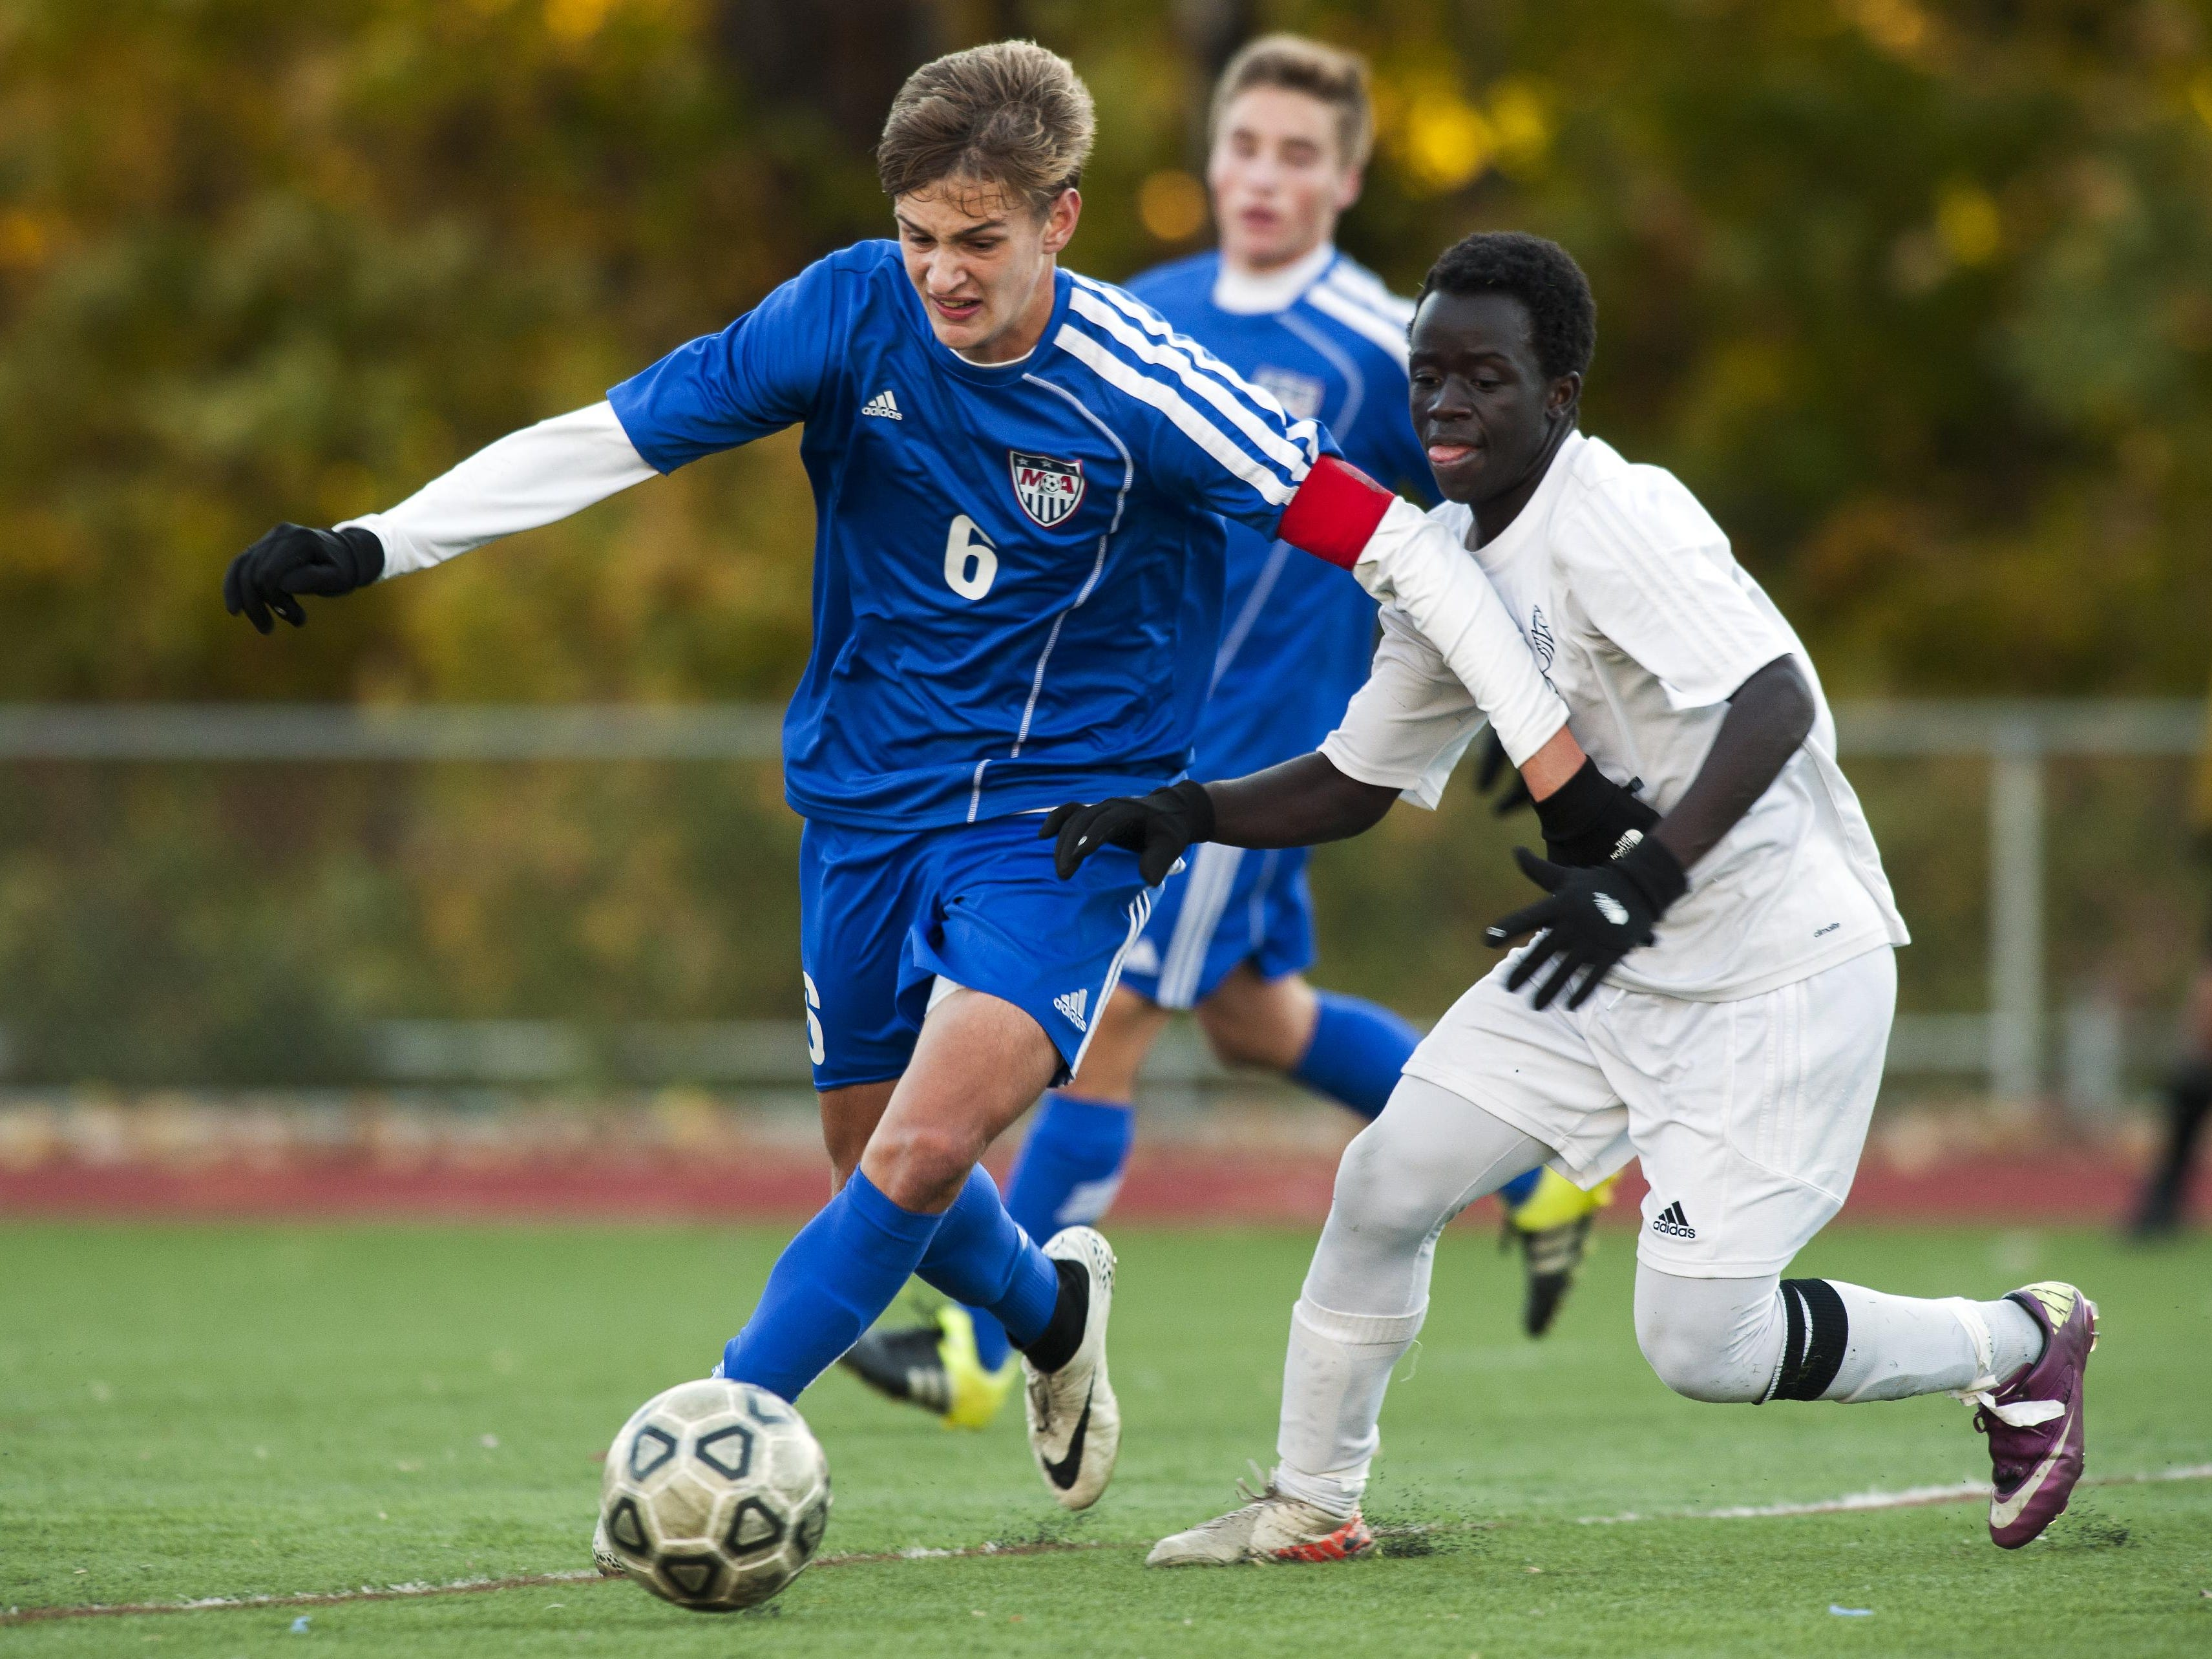 Mount Anthony's Jack Peterson (6) gets past Burlington's Maenda Bienfait Badibang (21) with the ball during the quarterfinal boys soccer game between Mount Anthony and Burlington at Buck Hard Field on Friday afternoon October 23, 2015 in Burlington.